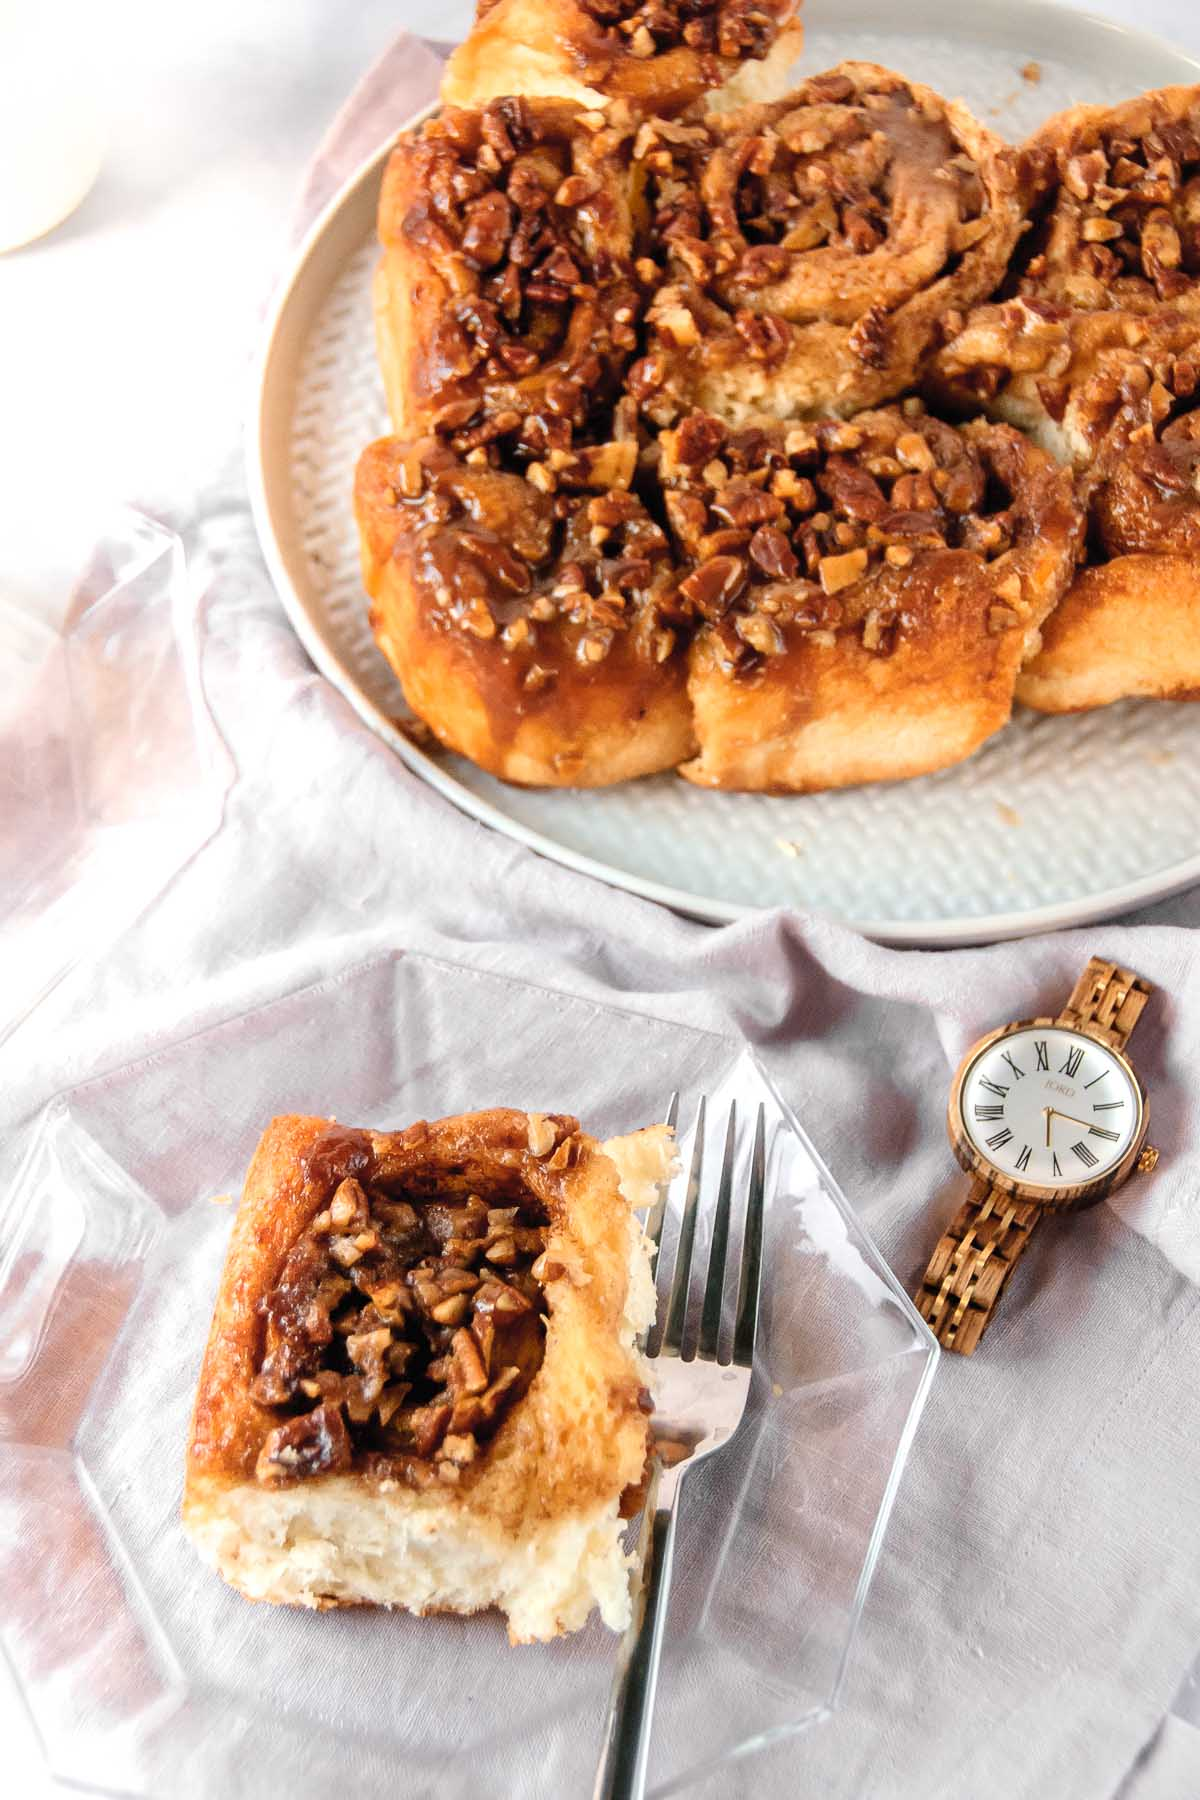 Table setting with cinnamon rolls on a platter and one cinnamon roll on a glass plate with a JORD wood watch beside it.